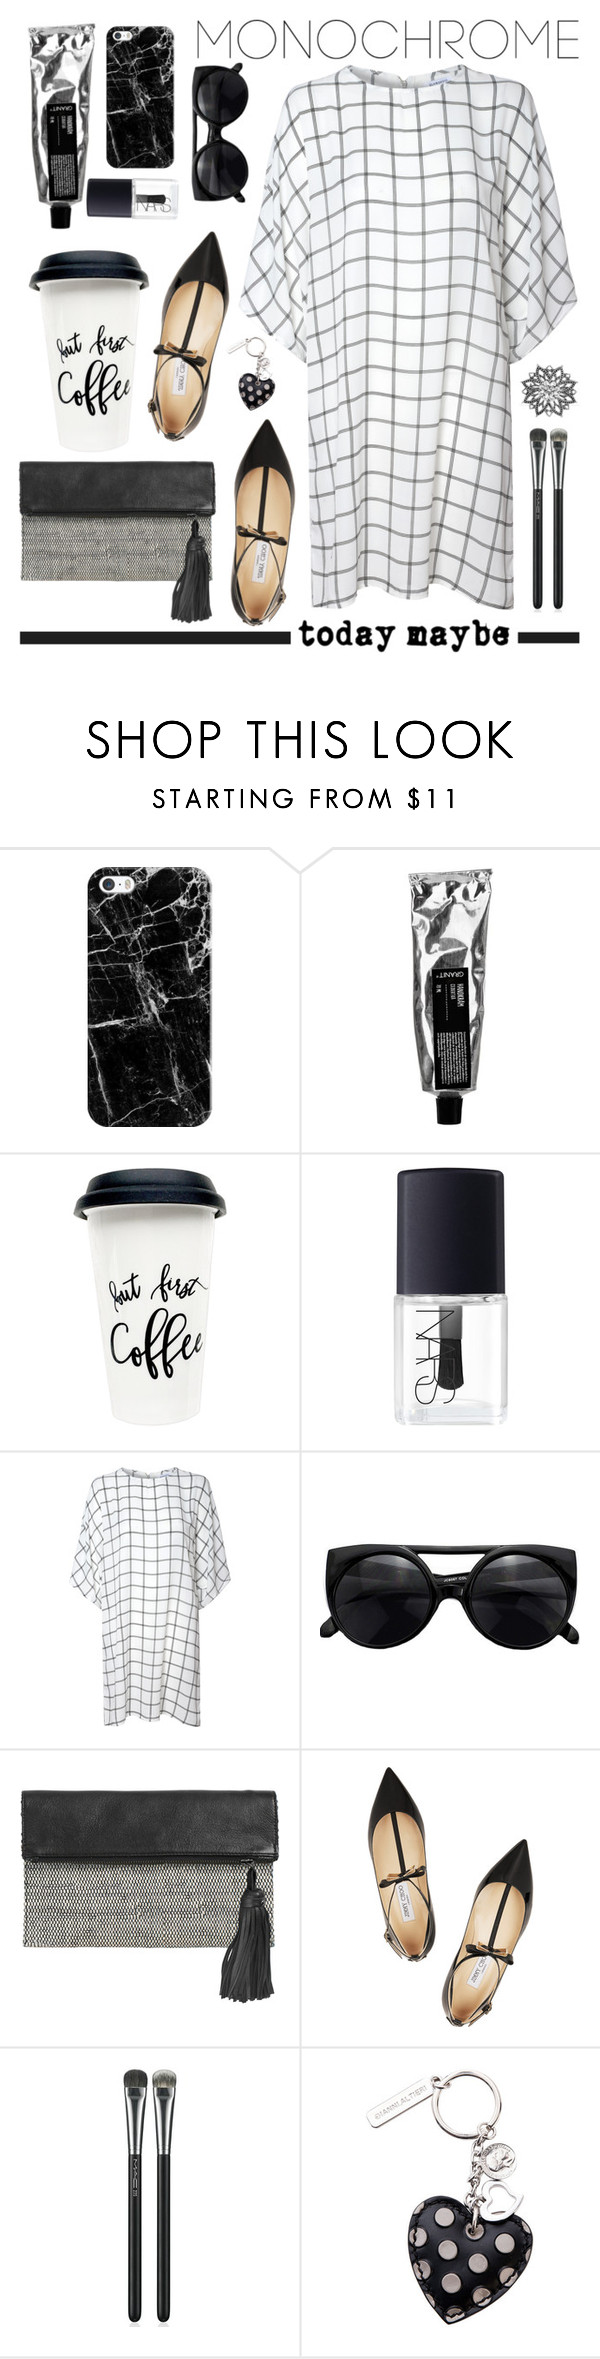 """""""Today maybe"""" by einn-enna ❤ liked on Polyvore featuring Casetify, NARS Cosmetics, Glamorous, BeckSöndergaard, Jimmy Choo, MAC Cosmetics, monochrome, fashionset and polyvorecontest"""